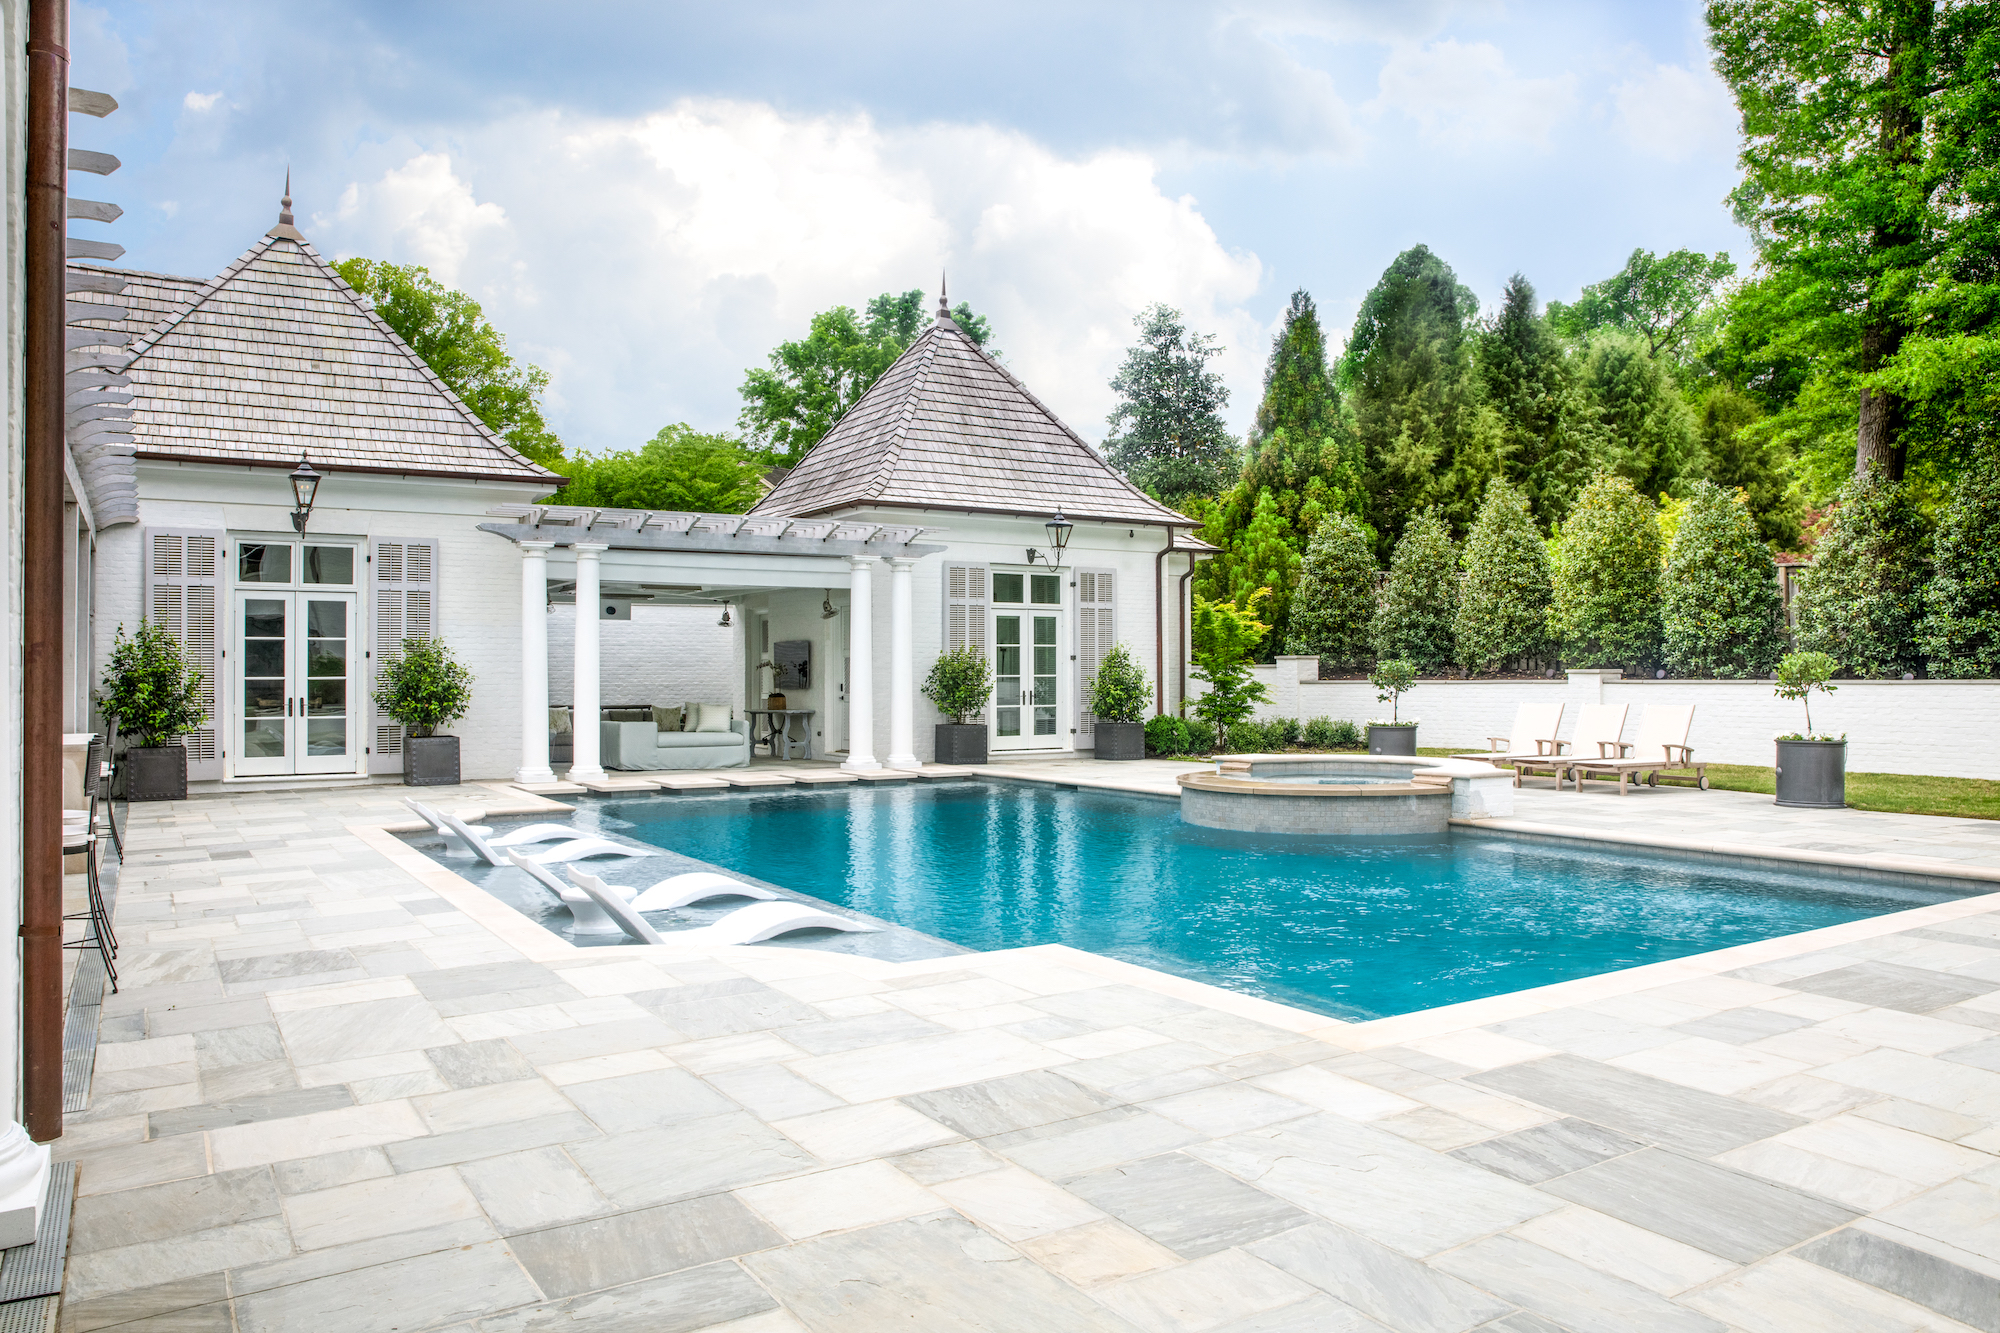 Revere-memphis architecture firm-swimming pool and cabana